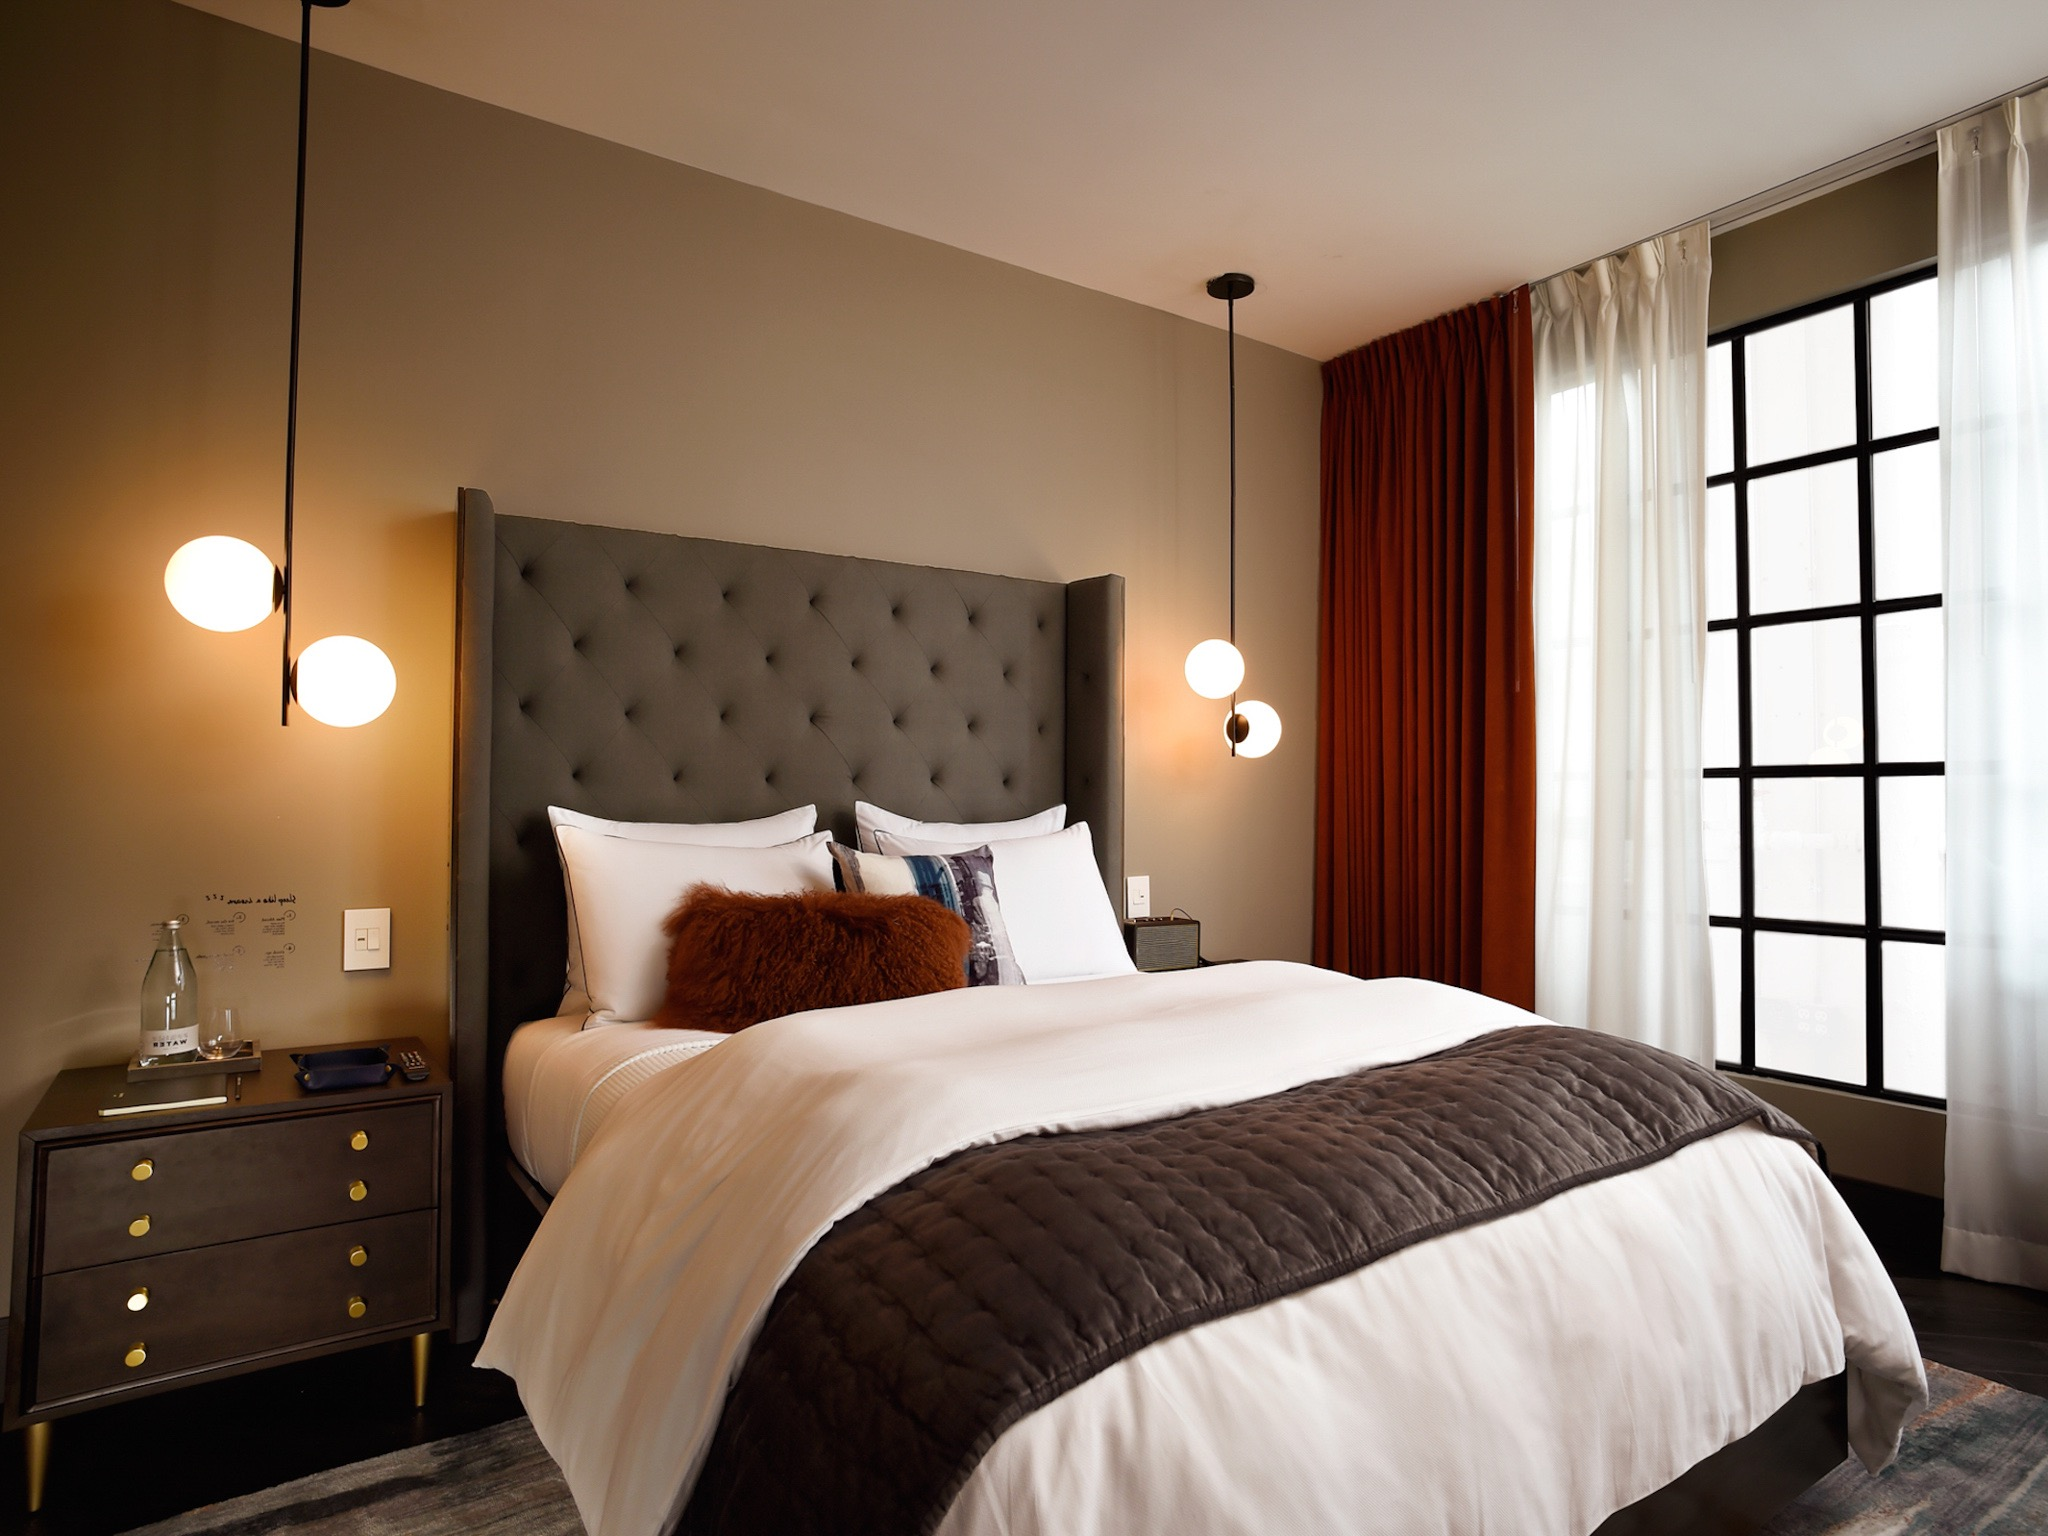 25 hotel inspired bedroom ideas for luxurious nuance for Hotel decor 2017